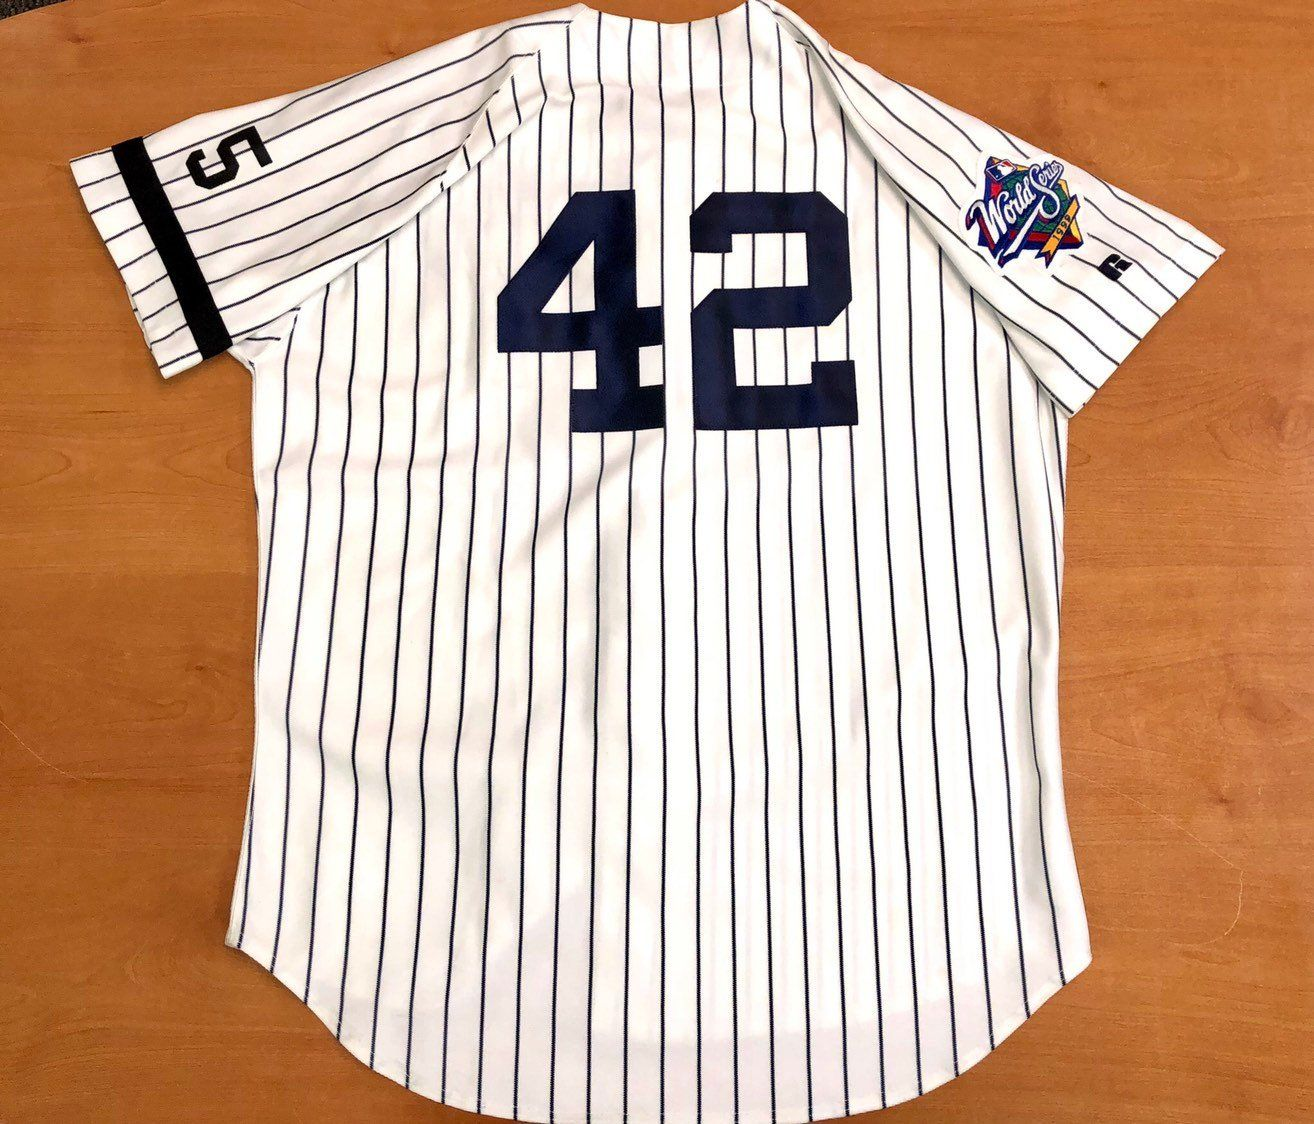 the latest 68989 f8ac8 Pin on 1980s & 1990s MLB Baseball Jerseys - yankees, red sox ...